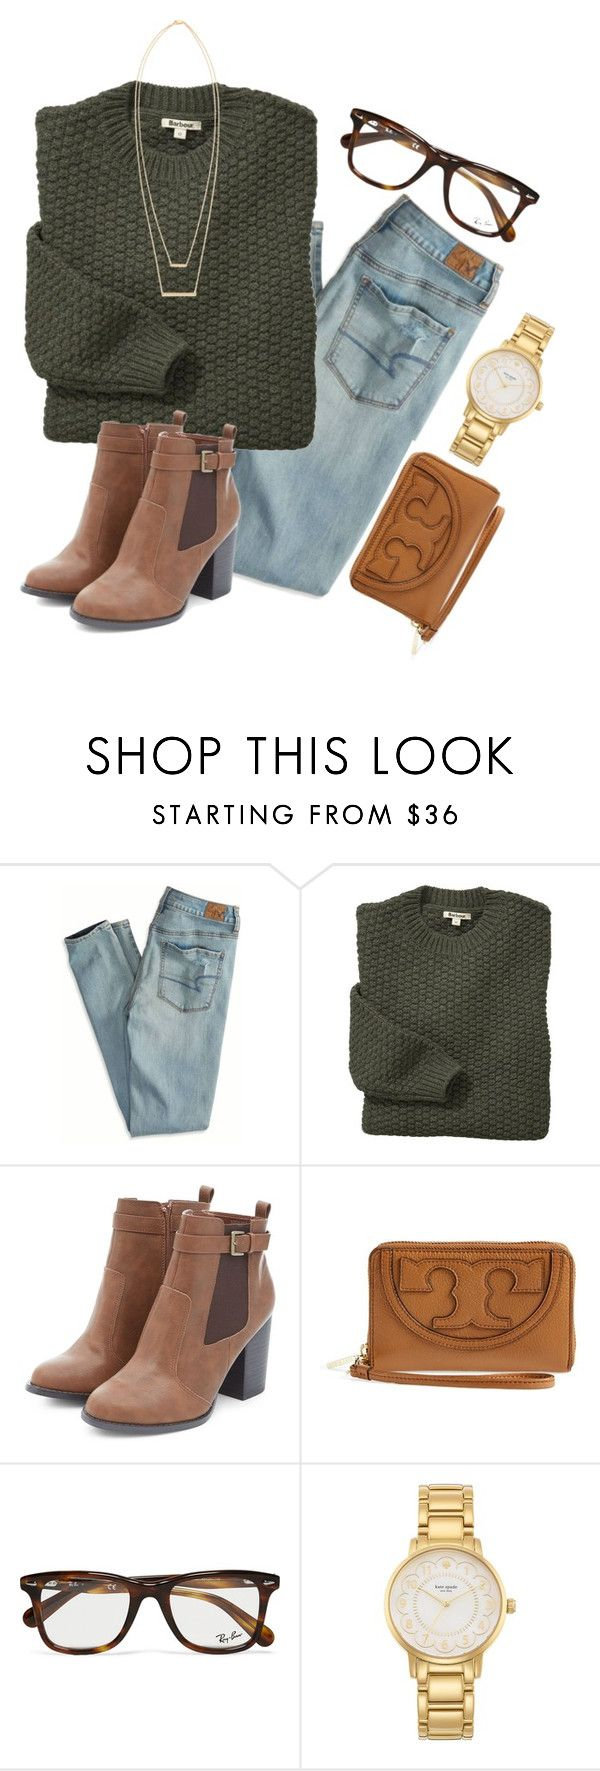 """""""10 from 150!!! """" by madelyn-abigail ❤ liked on Polyvore featuring American Eagle Outfitters, Barbour, Tory Burch, Ray-Ban, Kate Spade, Jennifer Zeuner, women's clothing, women's fashion, women and female"""